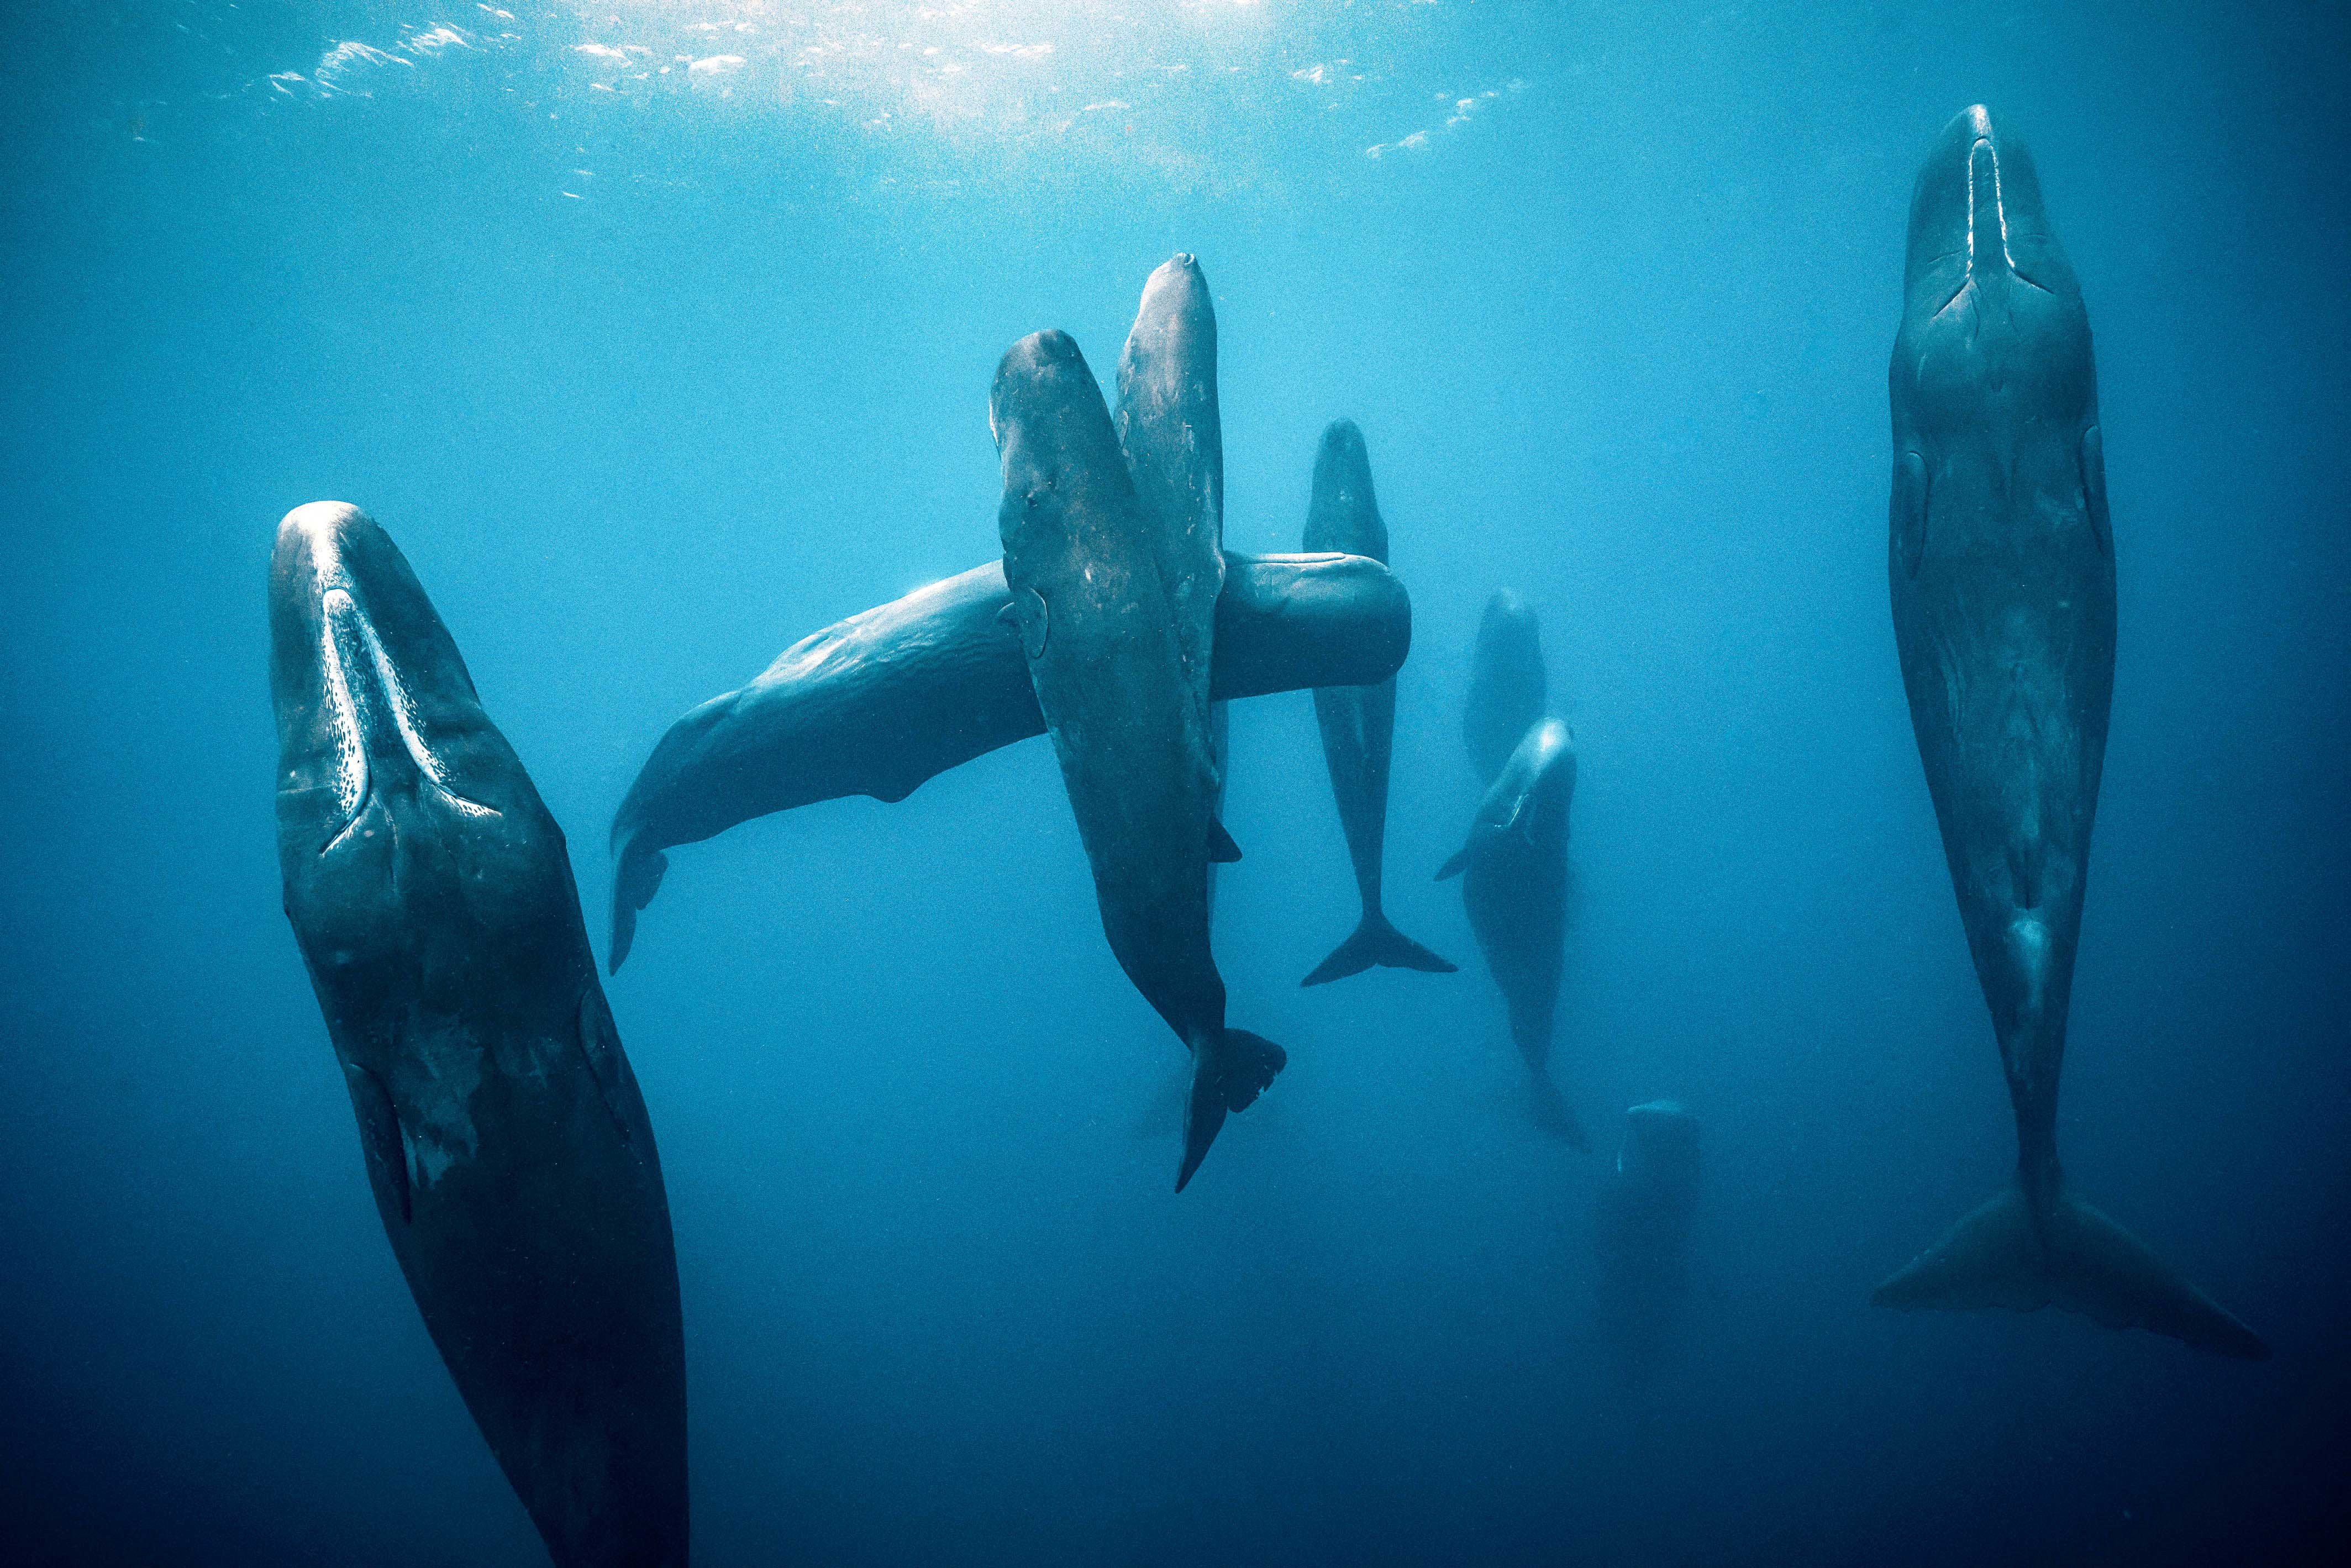 Vertically-sleeping sperm whales captured in Dominican waters